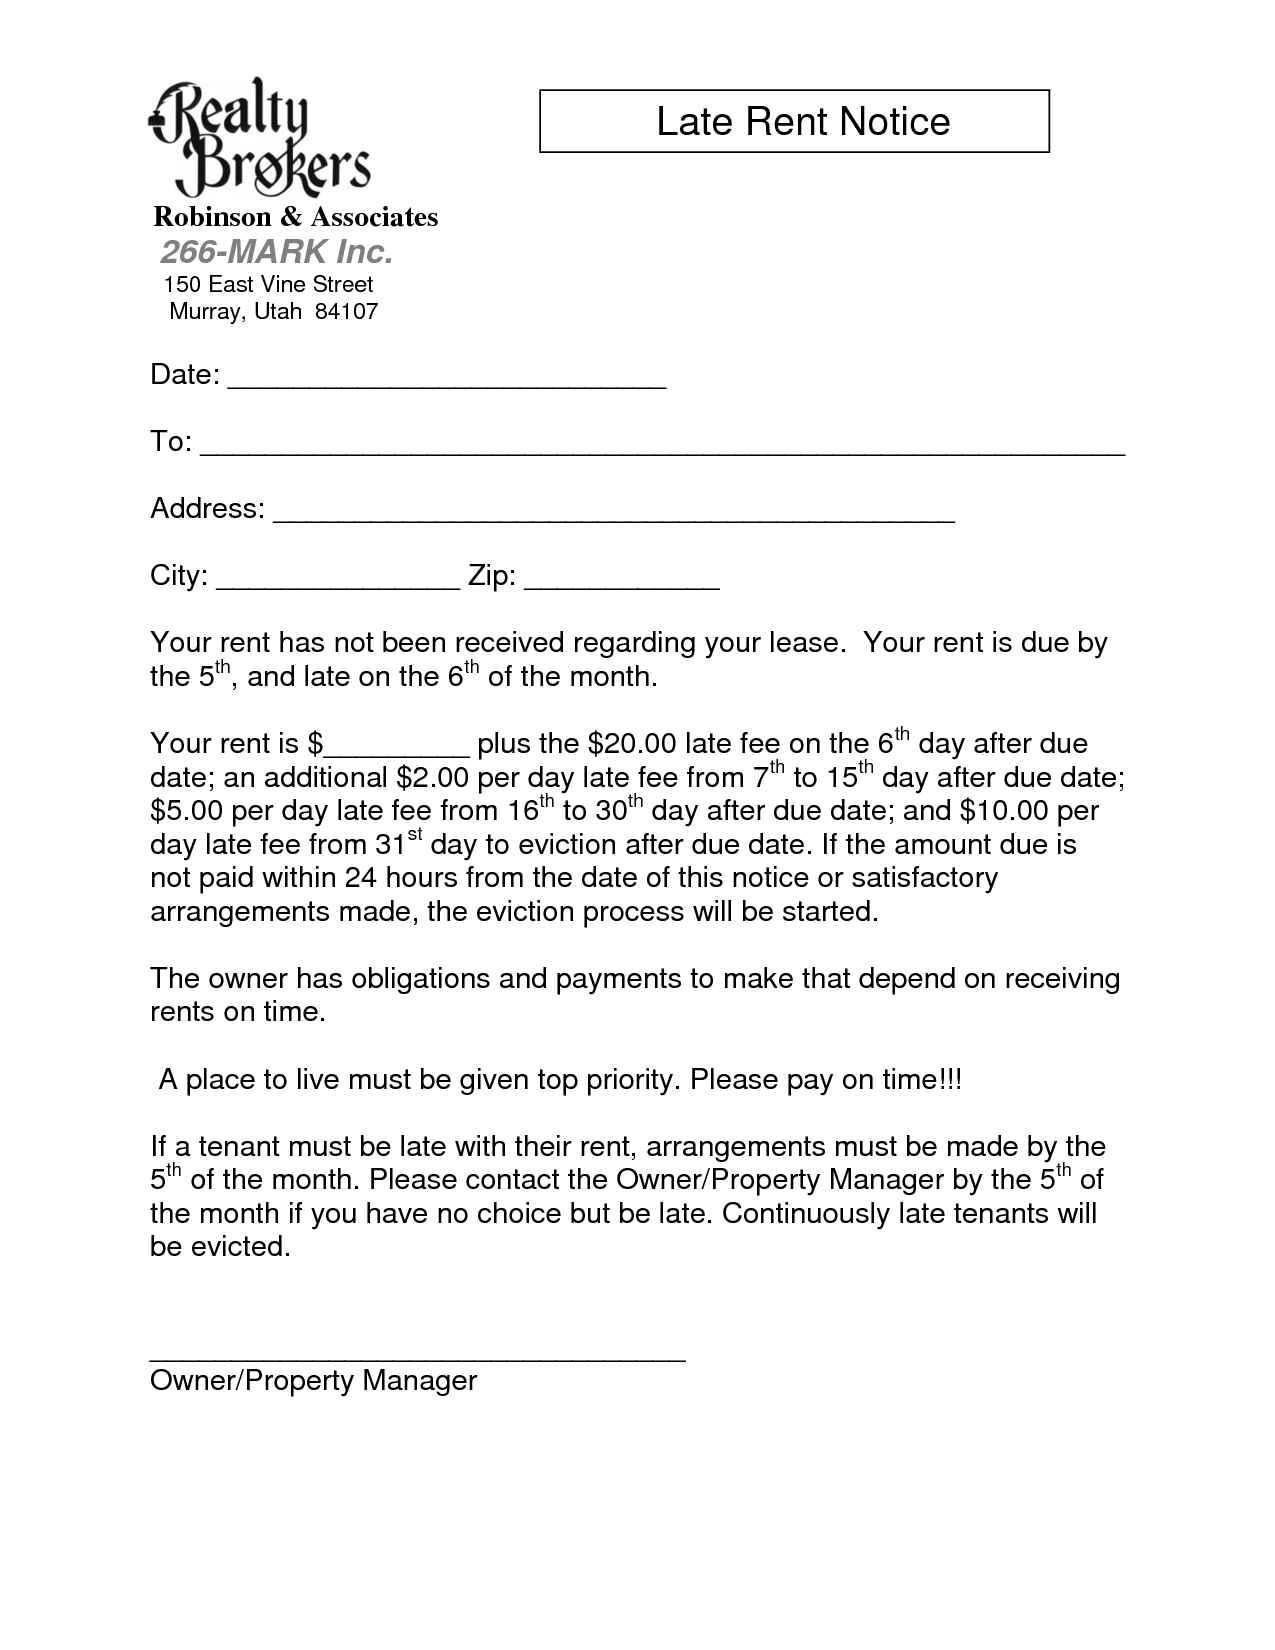 Sample Late Rent Notice Free Printable Documents Late Rent Notice Letter Example Cover Letter Design